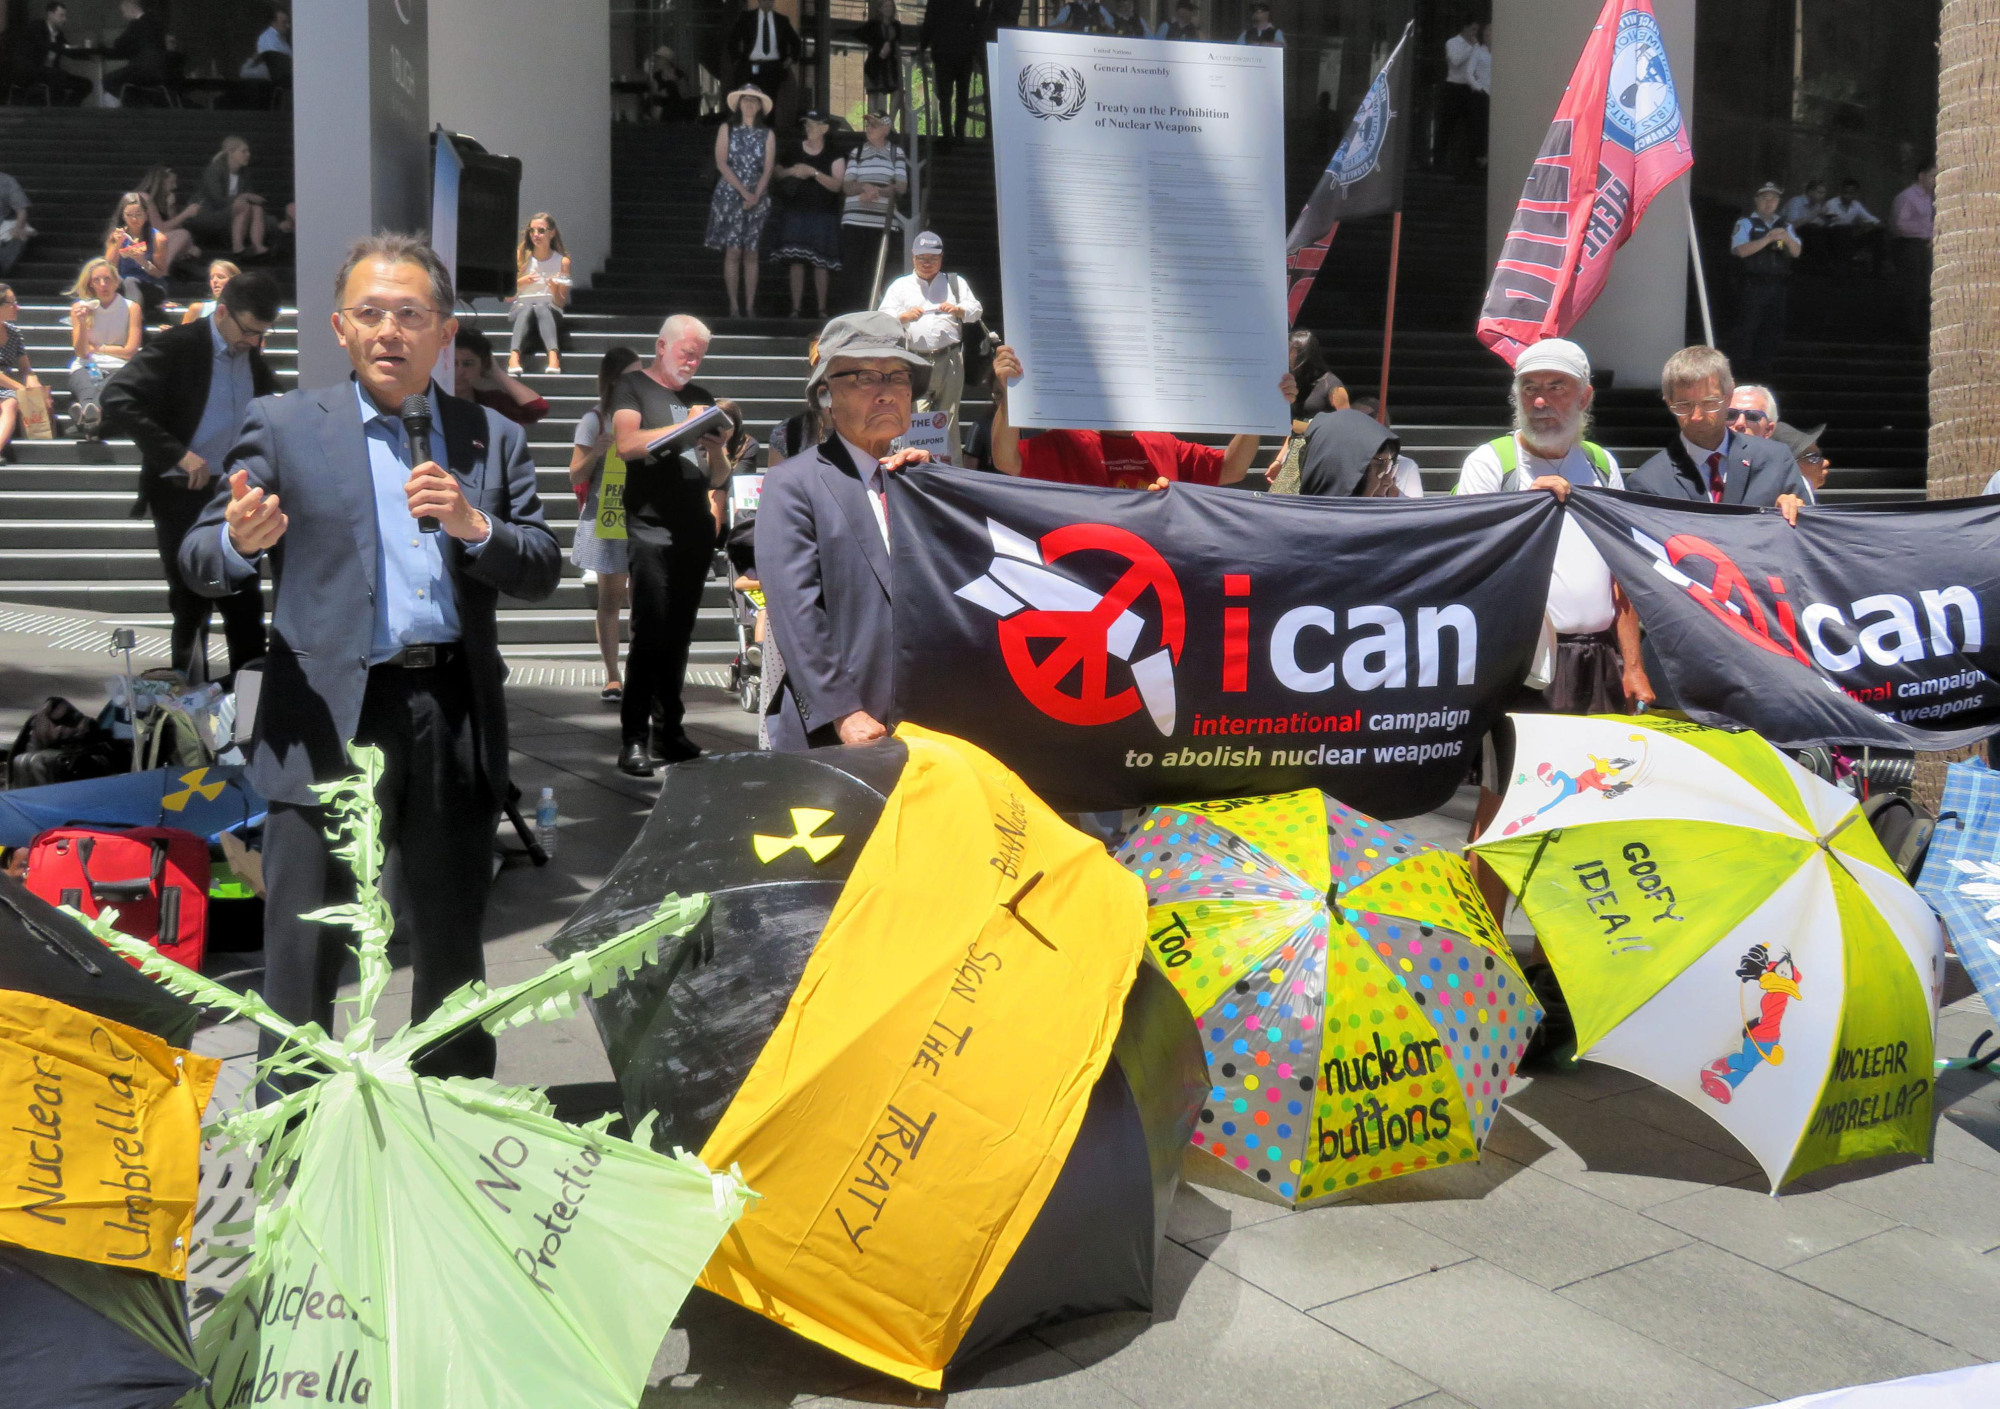 Akira Kawasaki (left), a core member of the International Campaign to Abolish Nuclear Weapons, speaks at a meeting in Sydney on Feb. 5.   KYODO